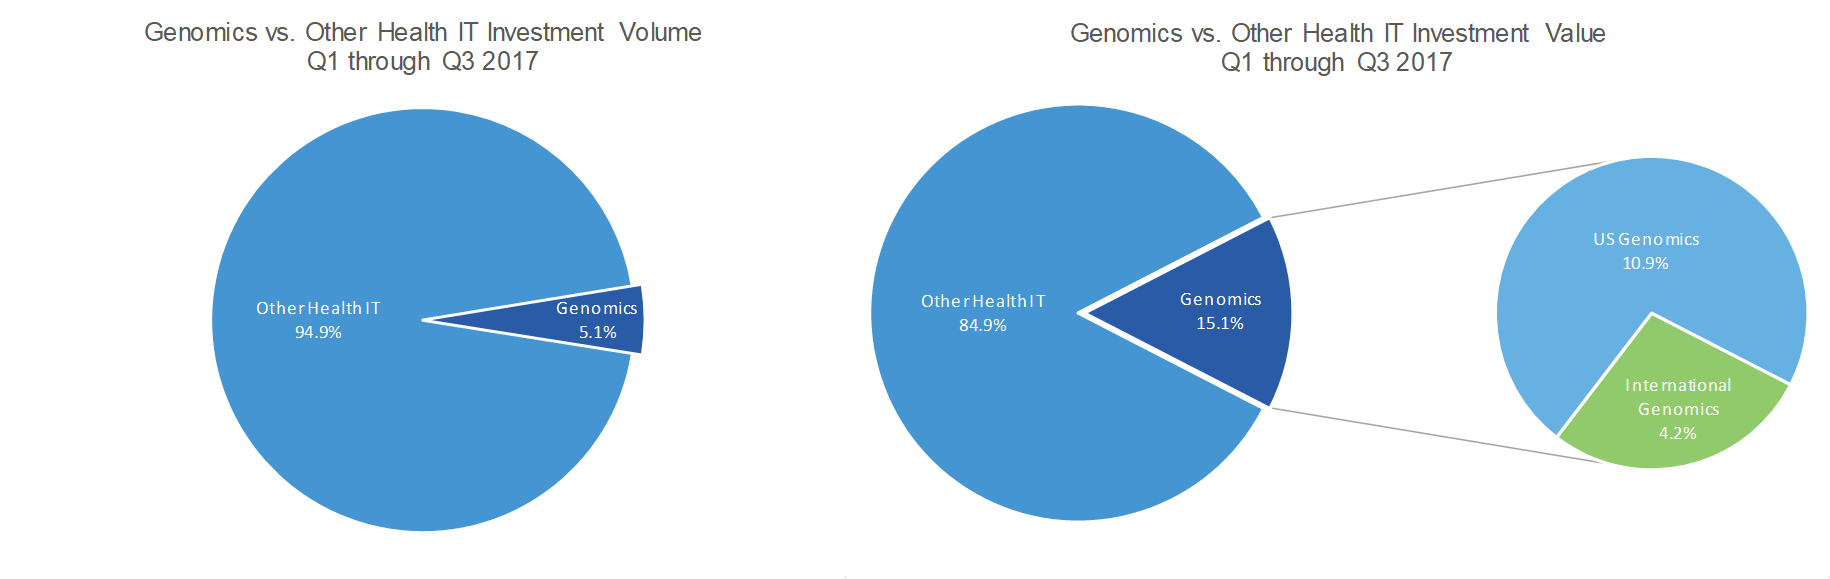 Healthcare growth partners genomic technologies see strong hgp undertook an analysis of investments and ma in the genomics field in the first three quarters of 2017 focusing on genomic technologies that sit at the malvernweather Image collections